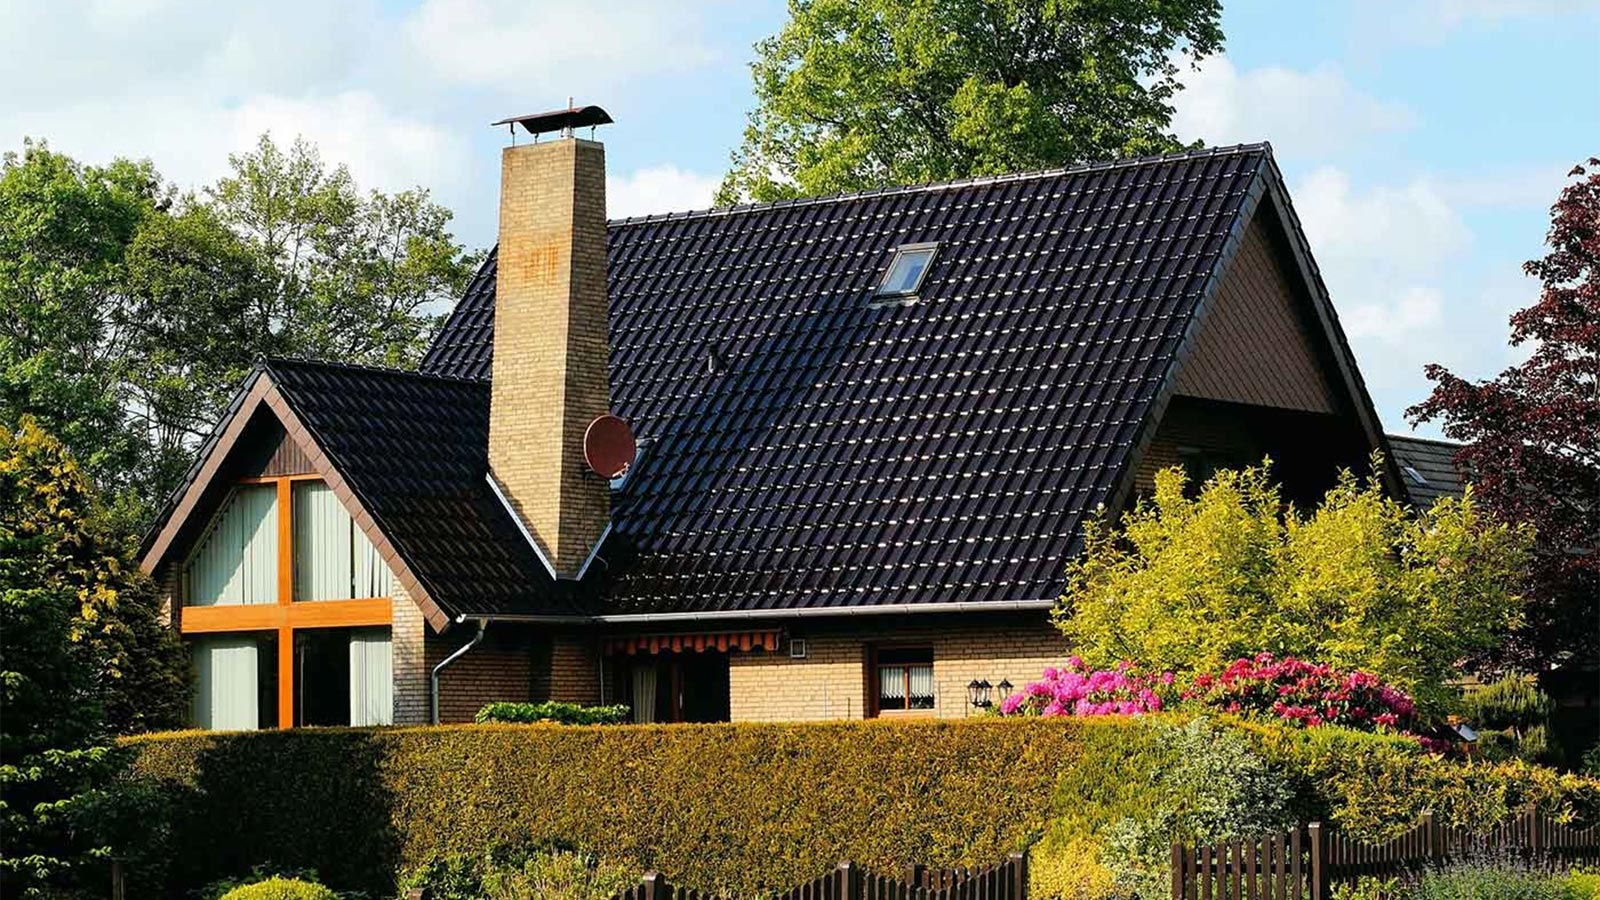 5 Things You Must Know About Your Roof